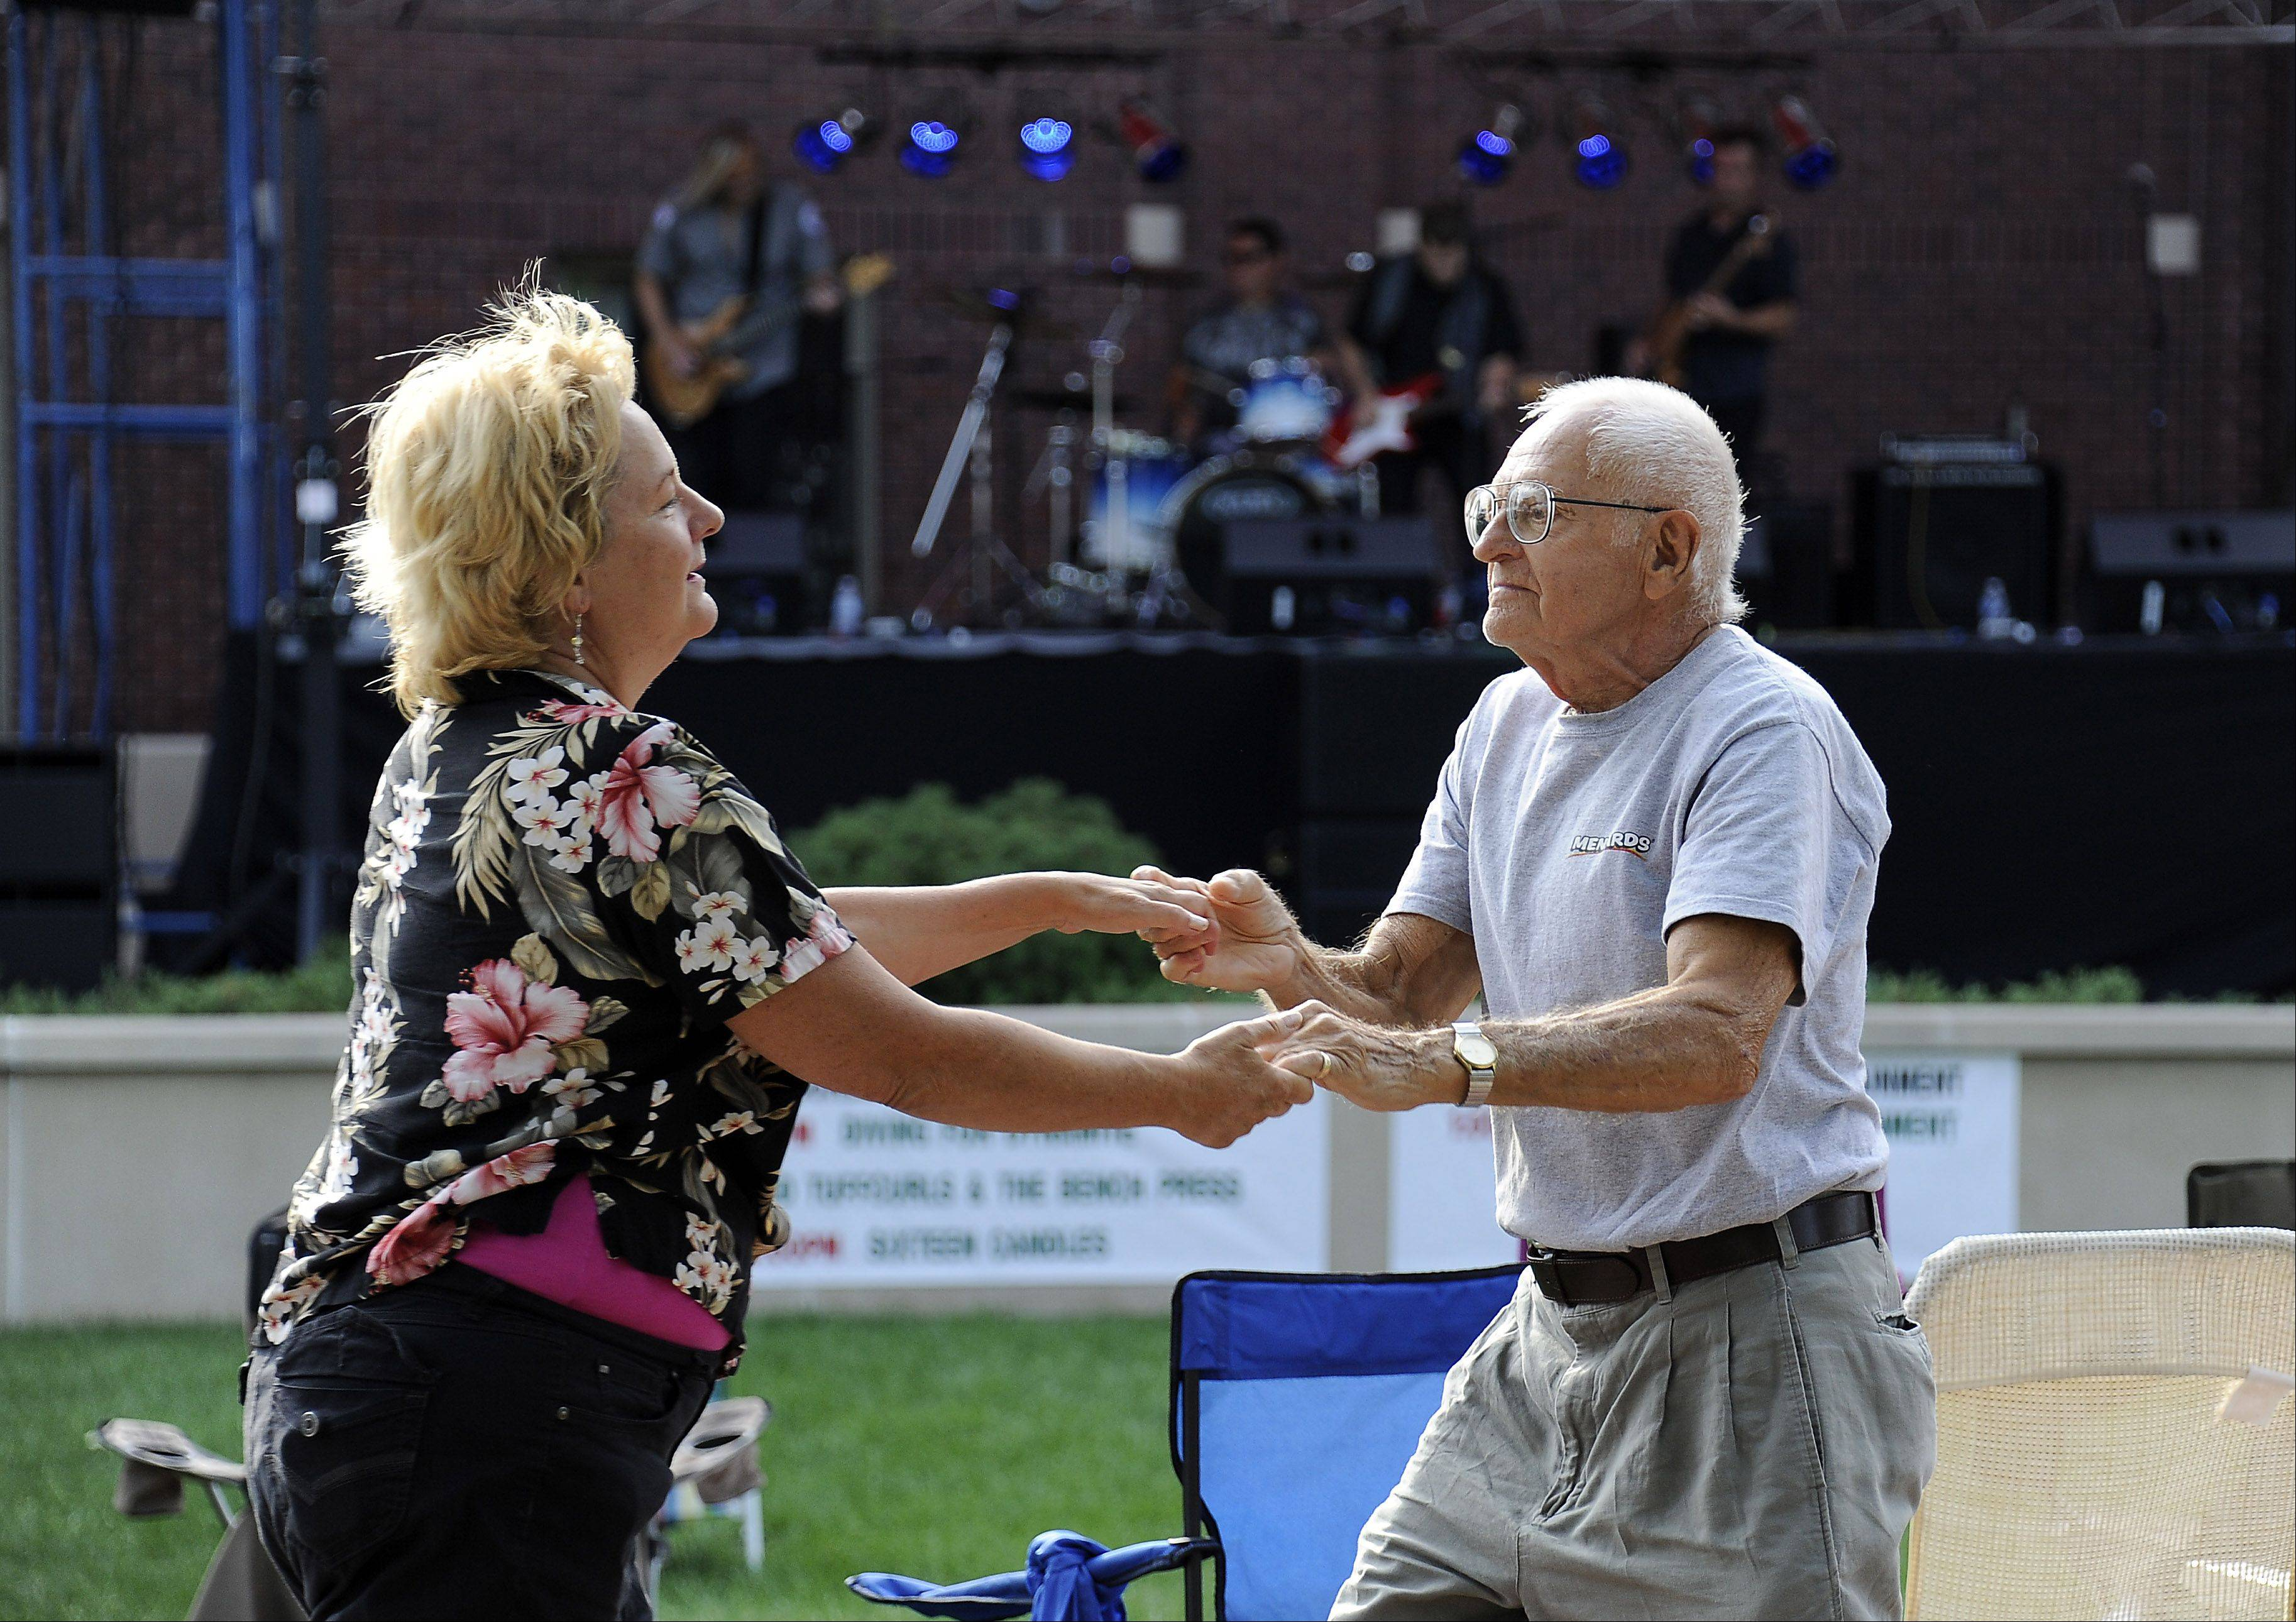 Steve Tarzon and Winnie Franzak of Mt. Prospect enjoy the music from the band Diving for Dynamite at Mt. Prospect's block party on Friday.